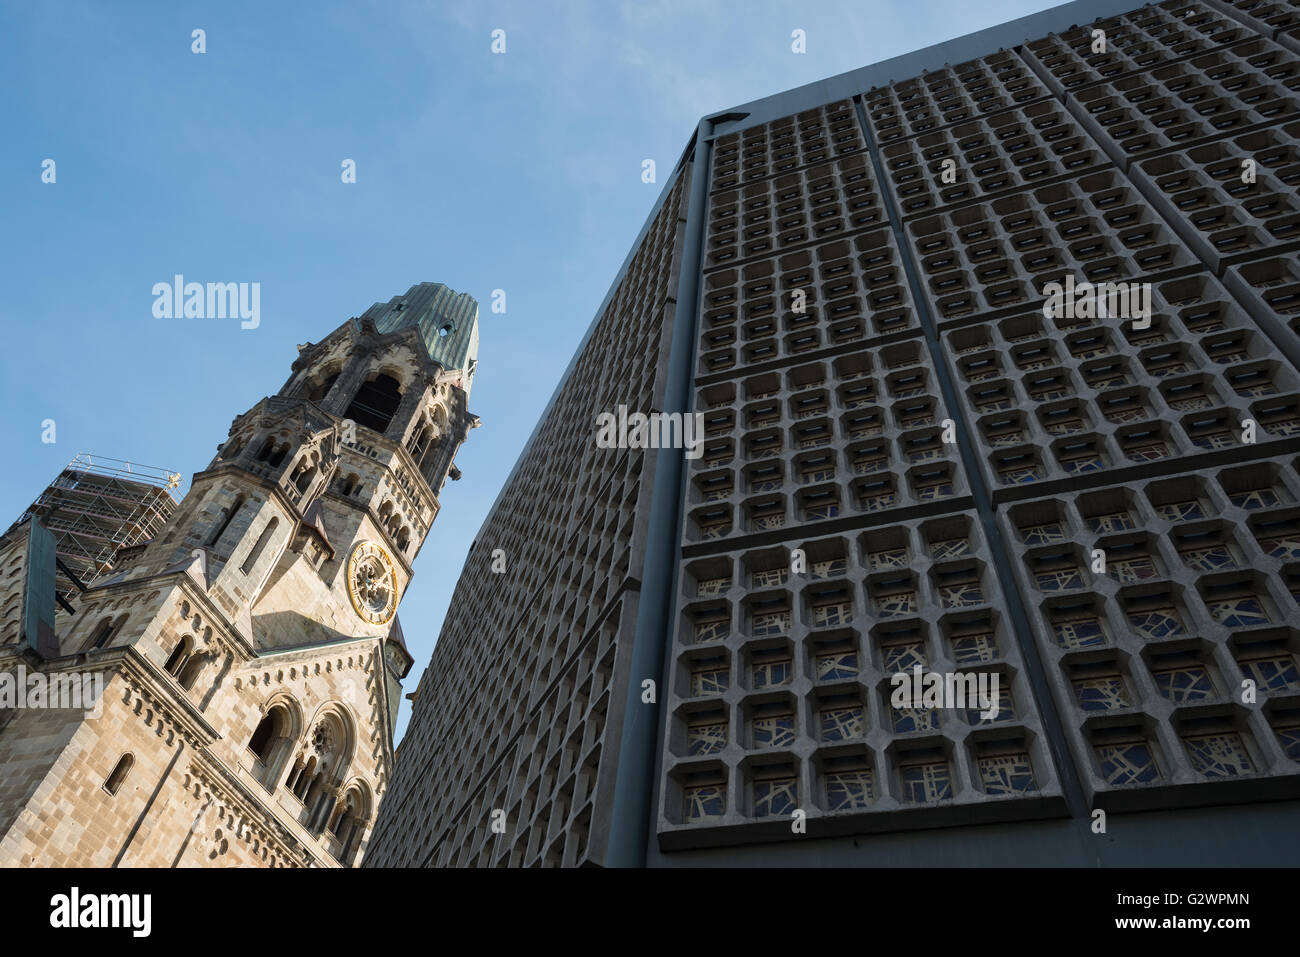 26.10.2015, Berlin, Berlin, Germany - Kaiser Wilhelm Memorial Church, Old Church tower with ruins and part of Eiermann's - Stock Image